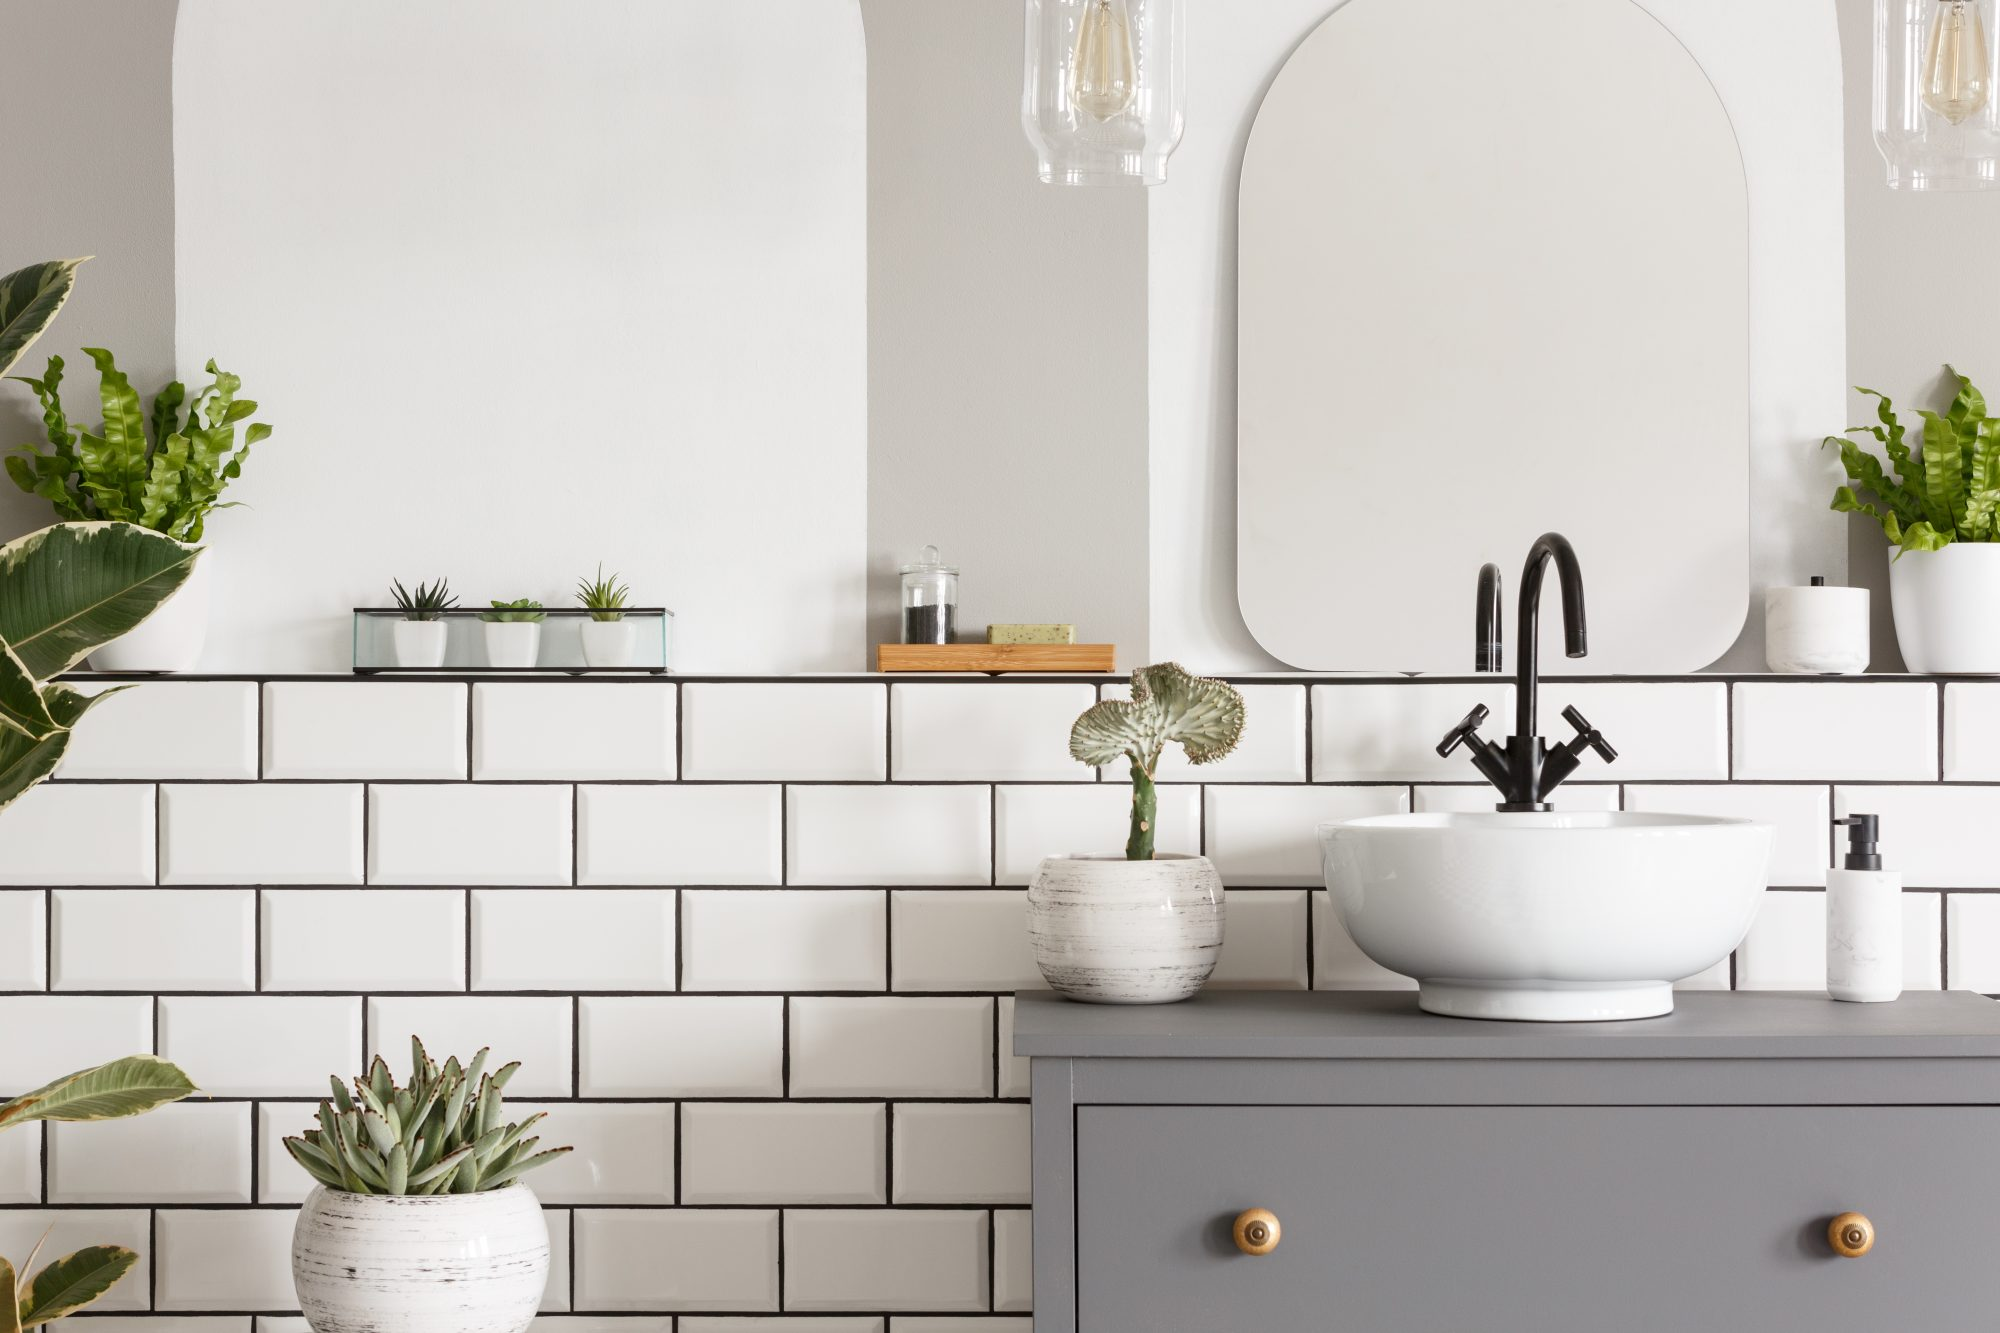 Timeless Bathroom Decor Trends That Will Never Go Out Of Style | Real Simple